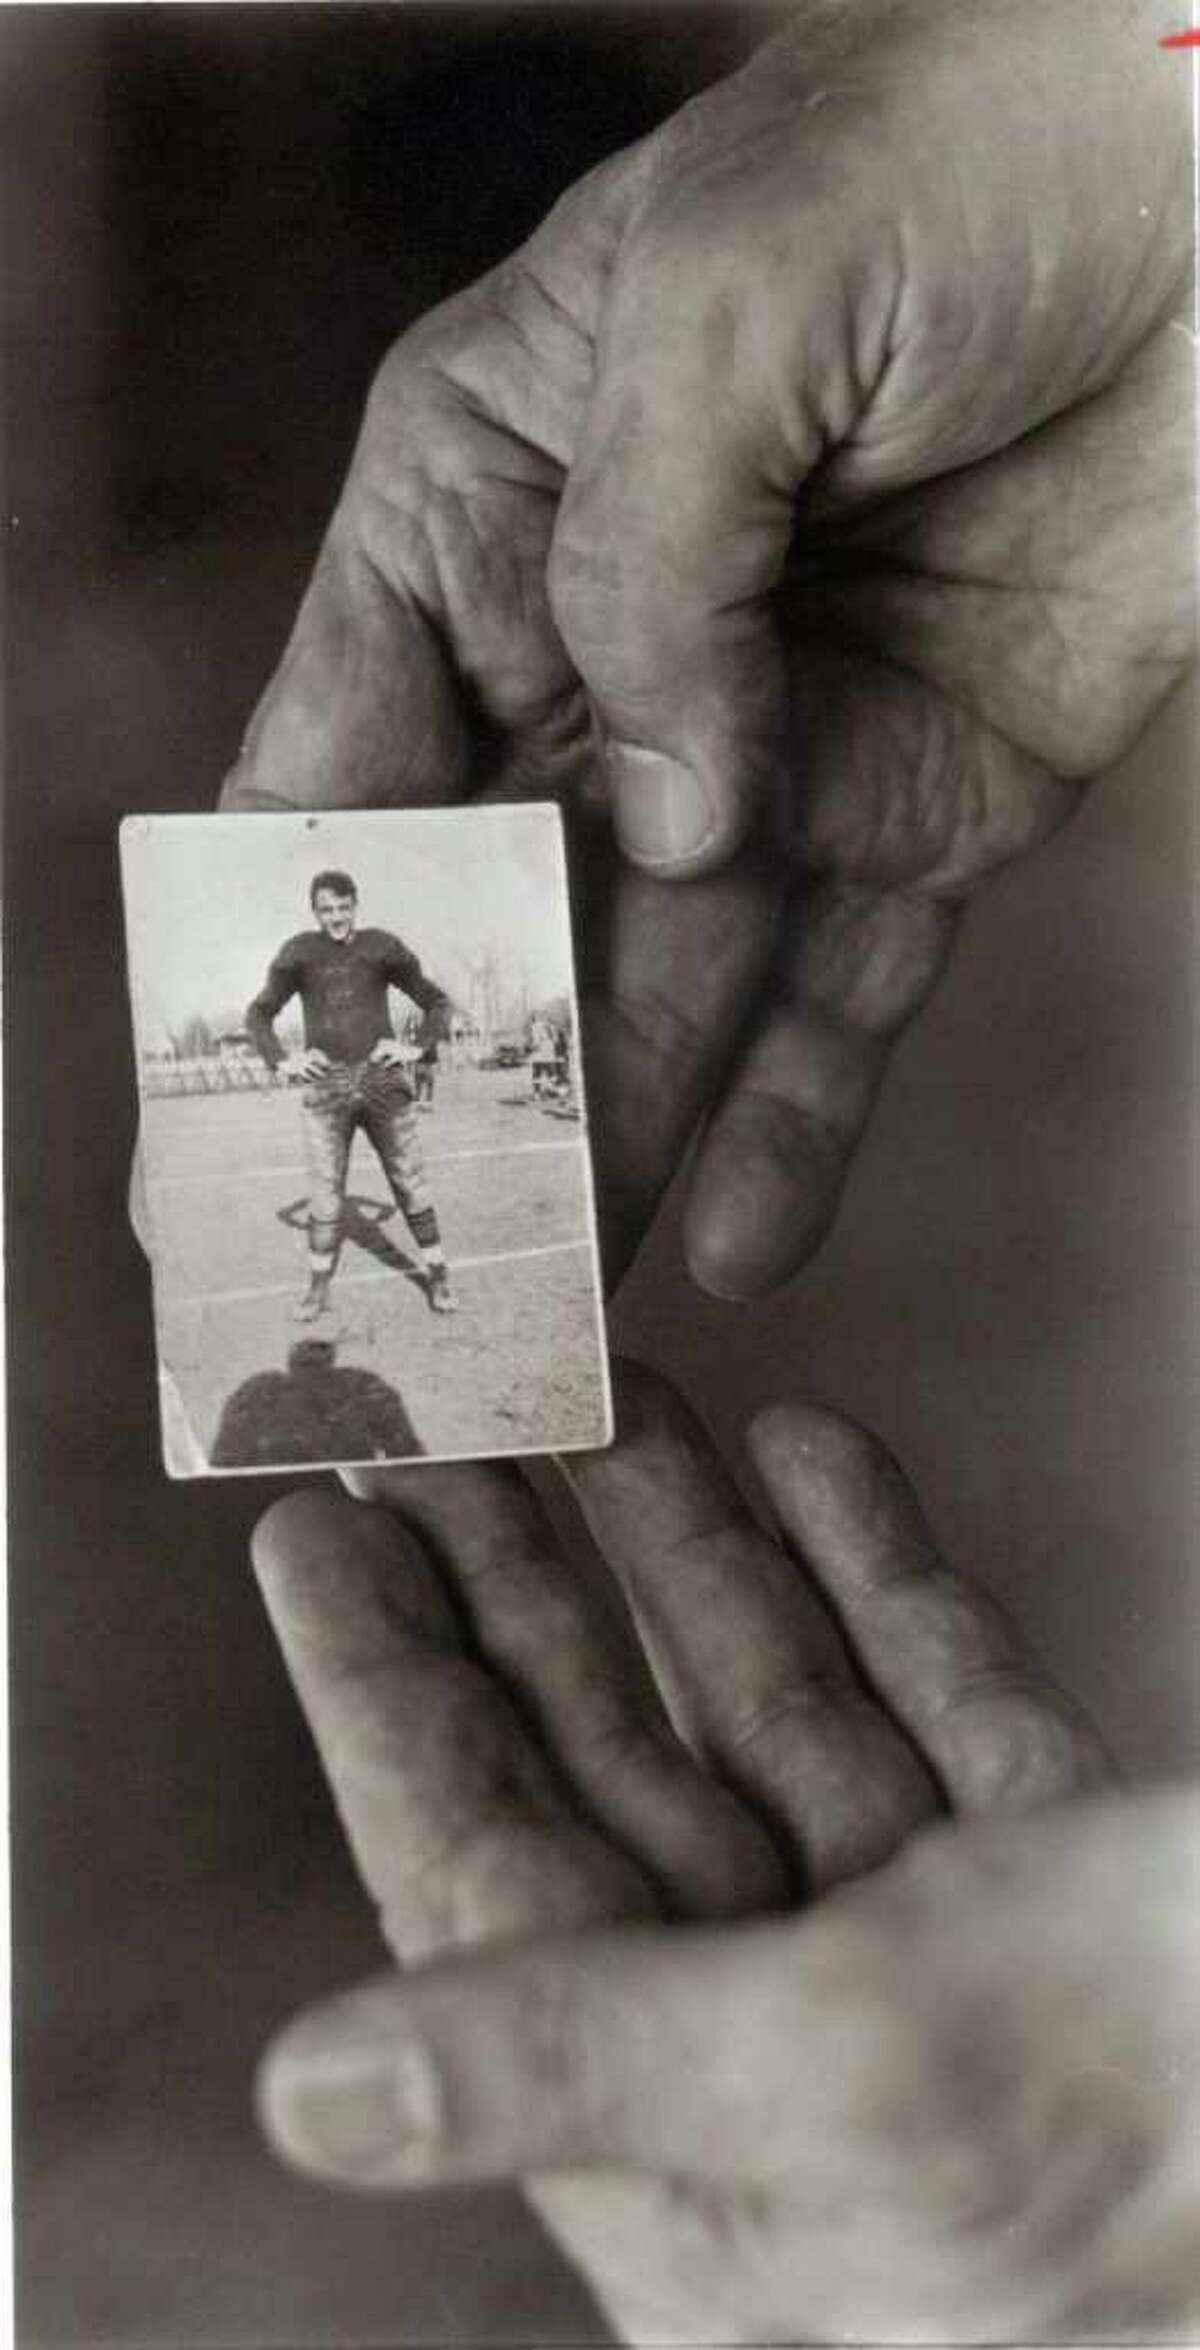 In a photo from 1991, Andy Robustelli holds a photo of himself in 1943 when he played football for Stamford High School. Robustelli, a NFL Hall of Famer, died Tuesday at 85.